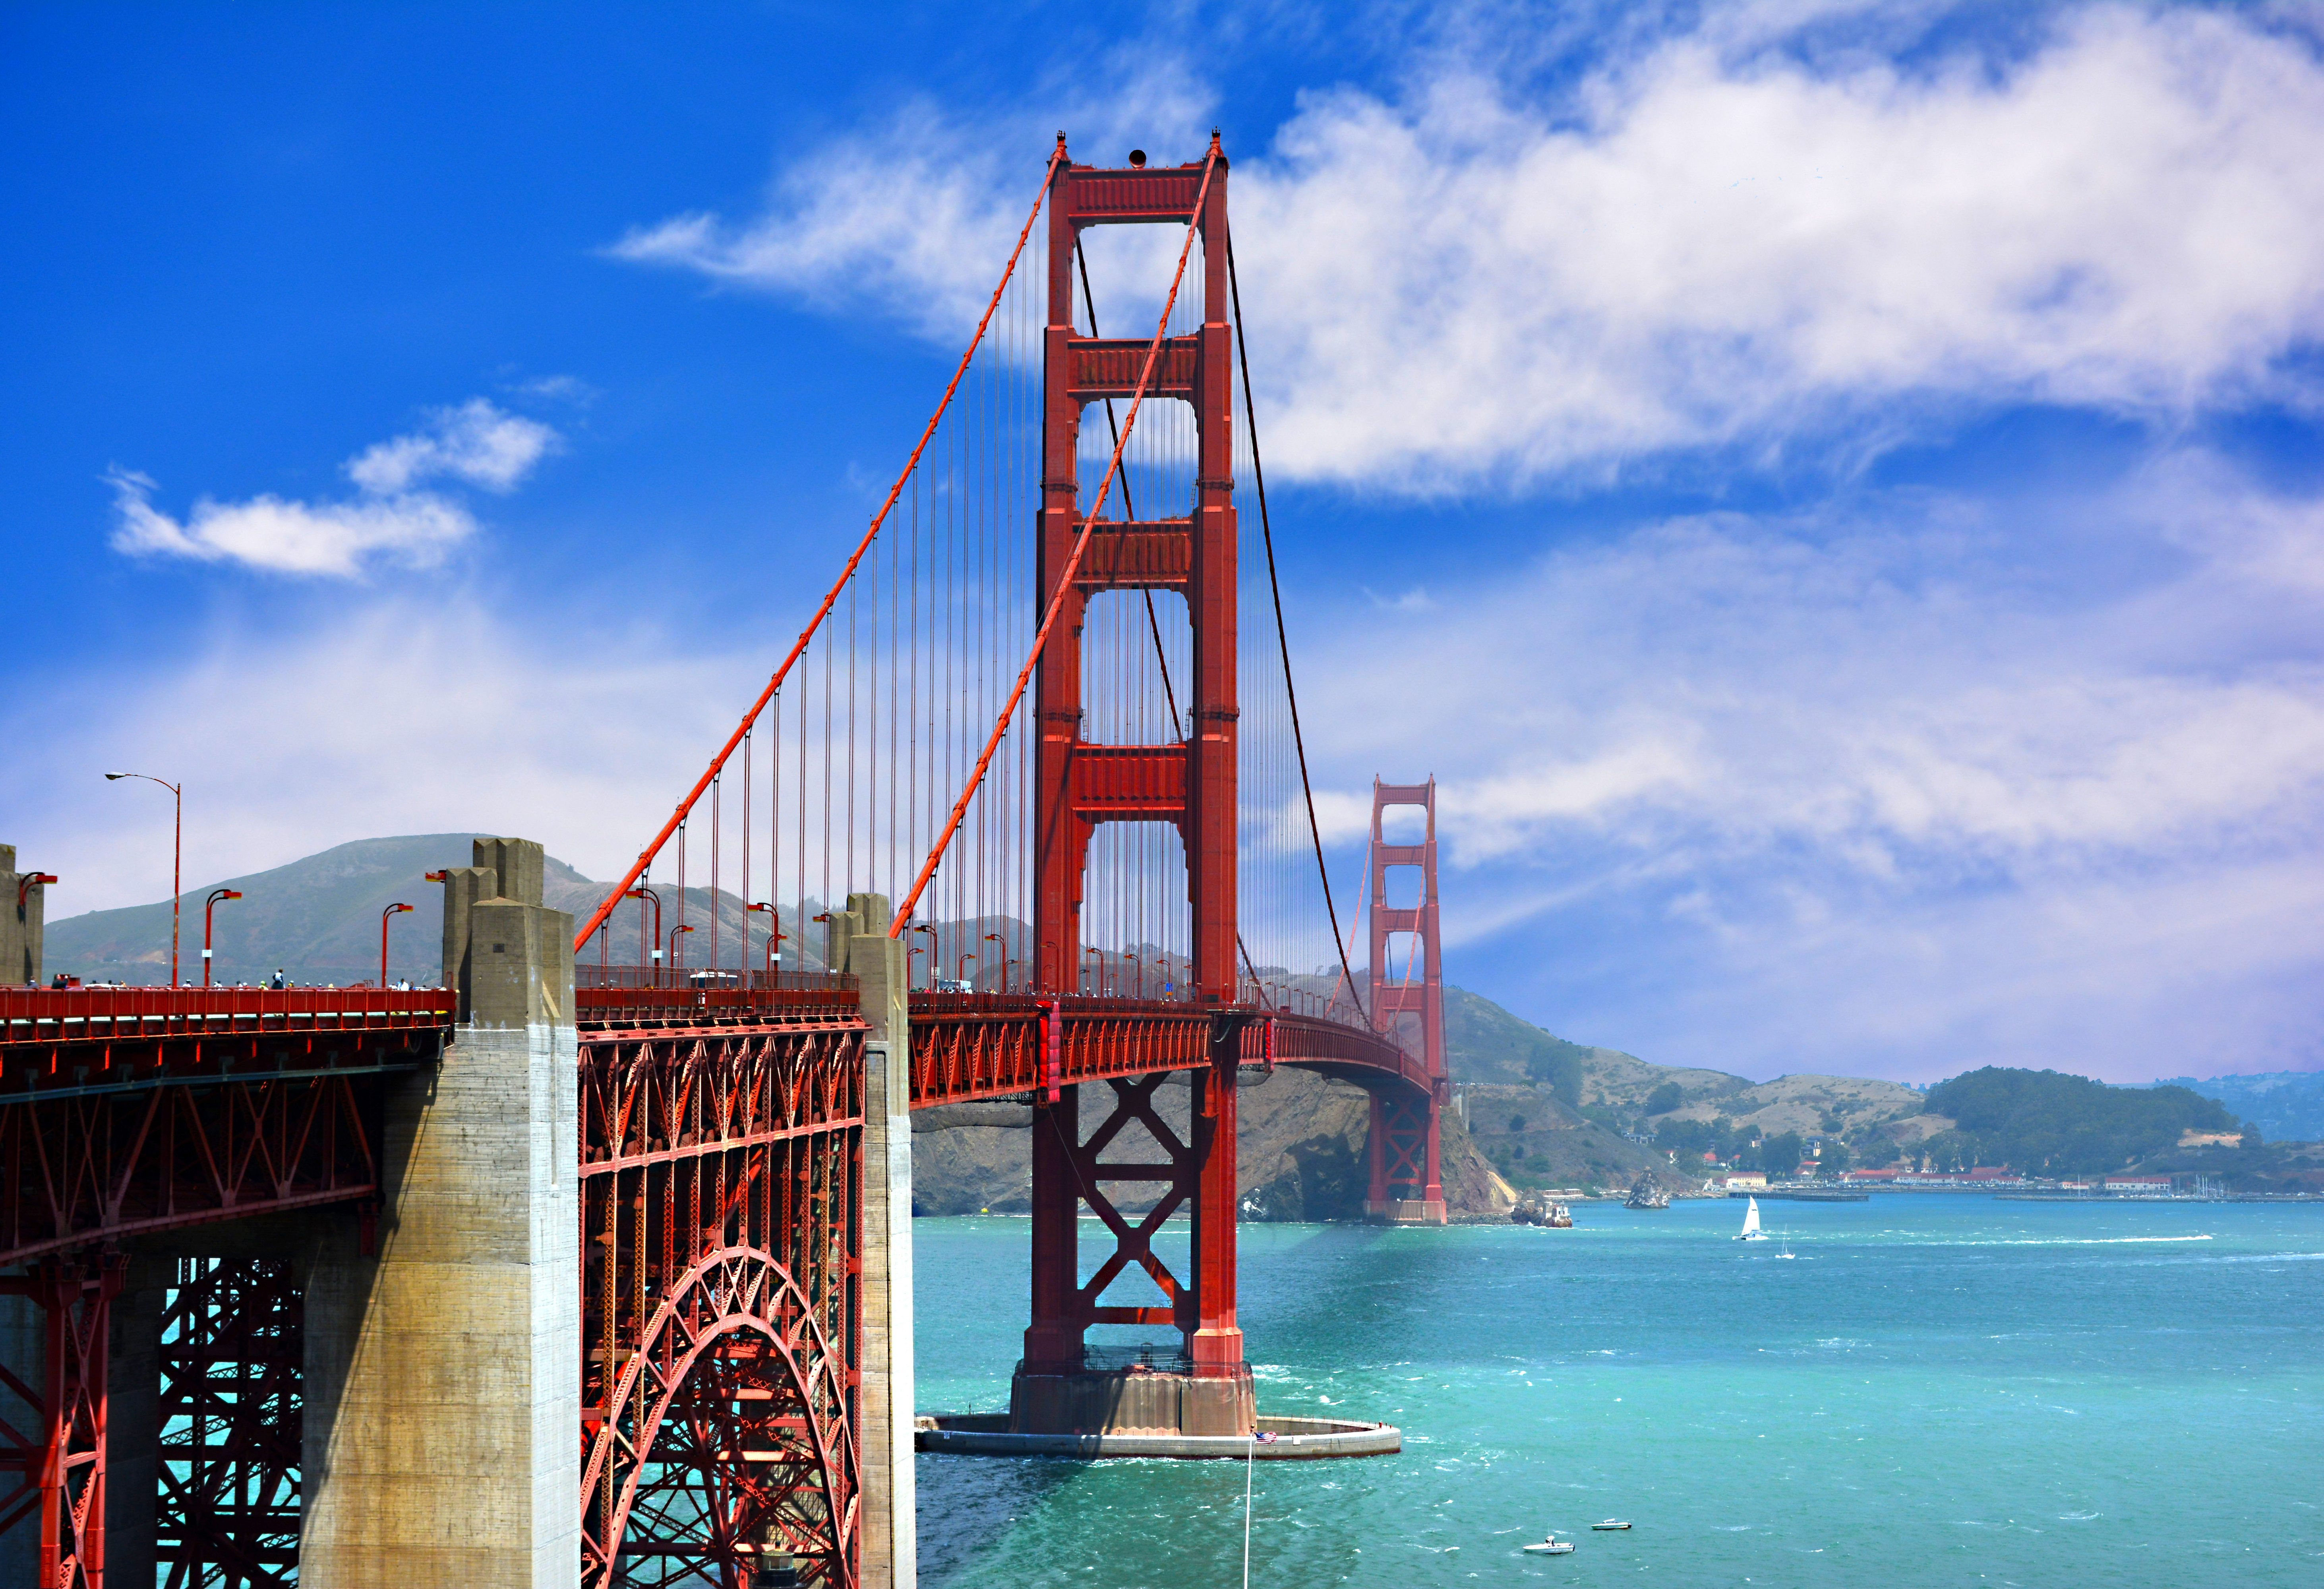 meer dan 50 dating San Francisco